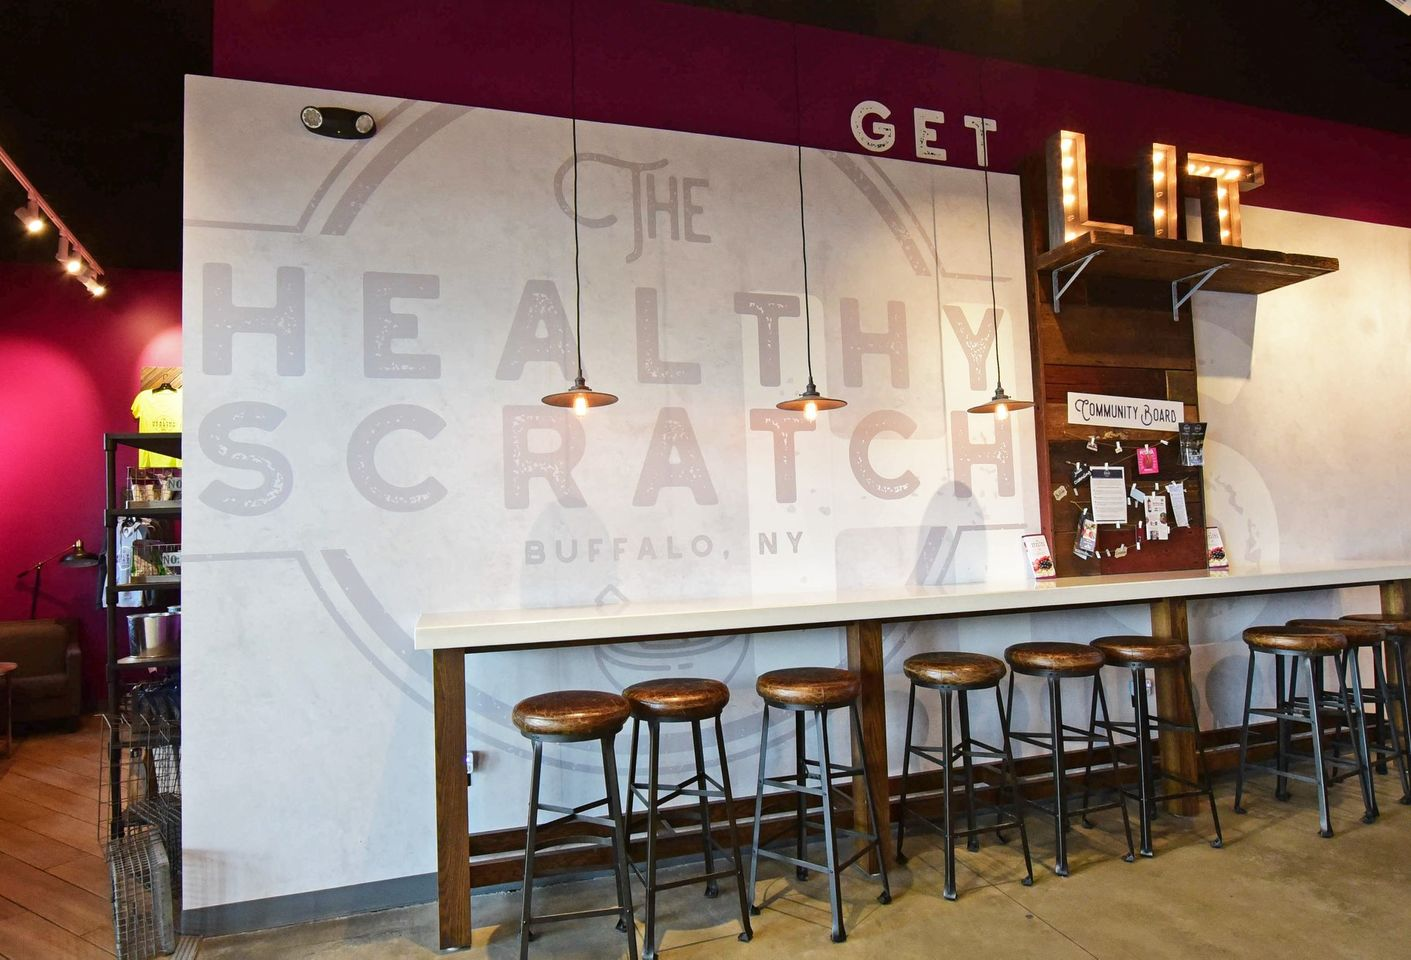 A photo of The Healthy Scratch, Harborcenter